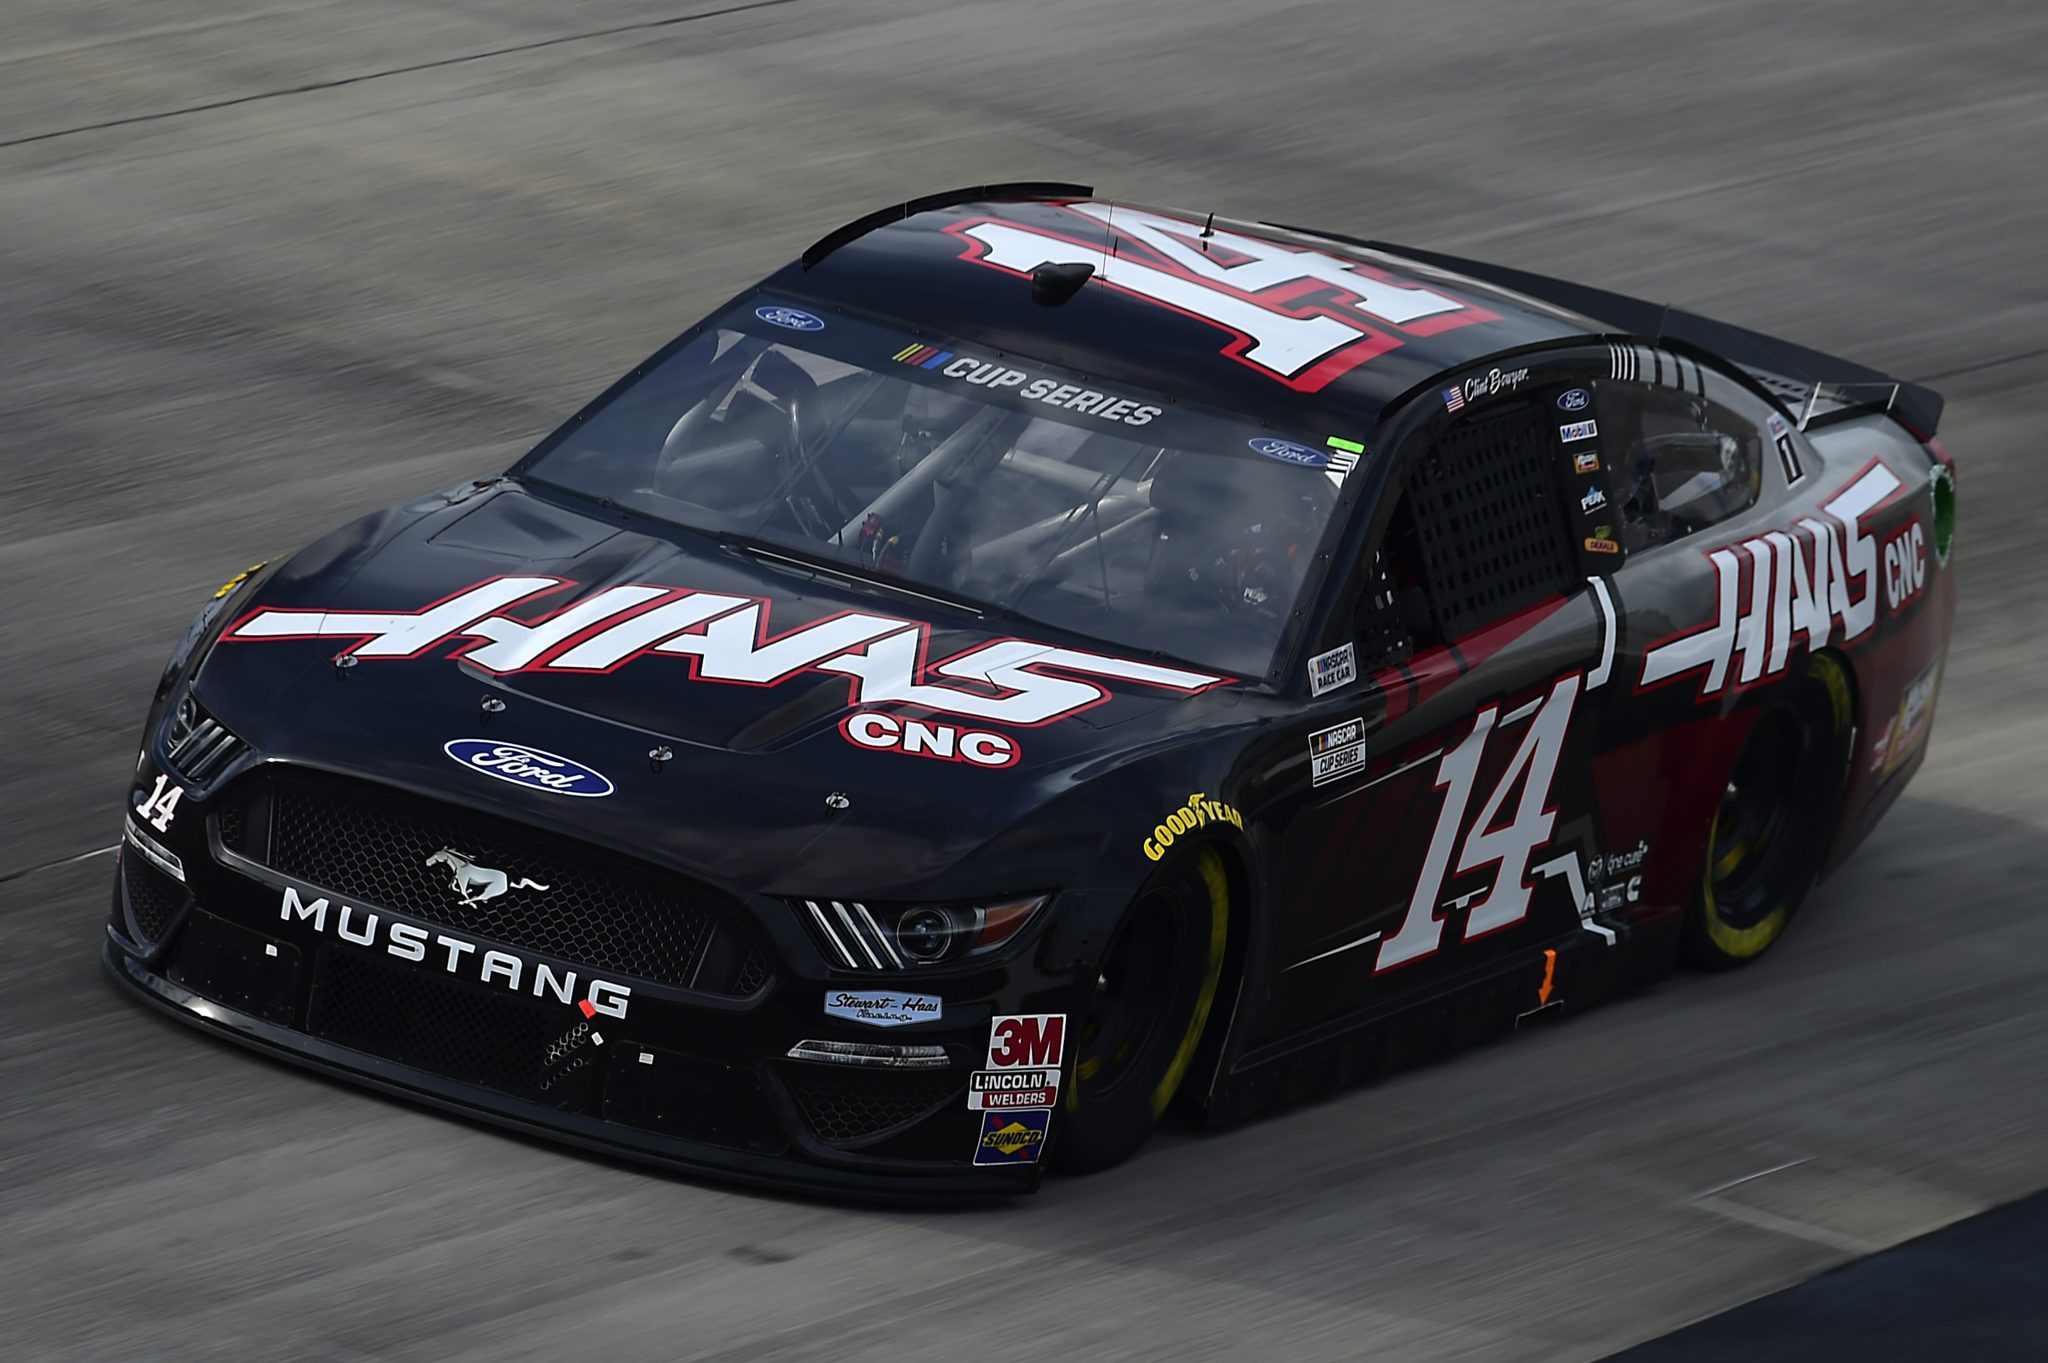 DOVER, DELAWARE - AUGUST 22: Clint Bowyer, driver of the #14 Haas Automation Ford, drives during the NASCAR Cup Series Drydene 311 at Dover International Speedway on August 22, 2020 in Dover, Delaware. (Photo by Jared C. Tilton/Getty Images) | Getty Images